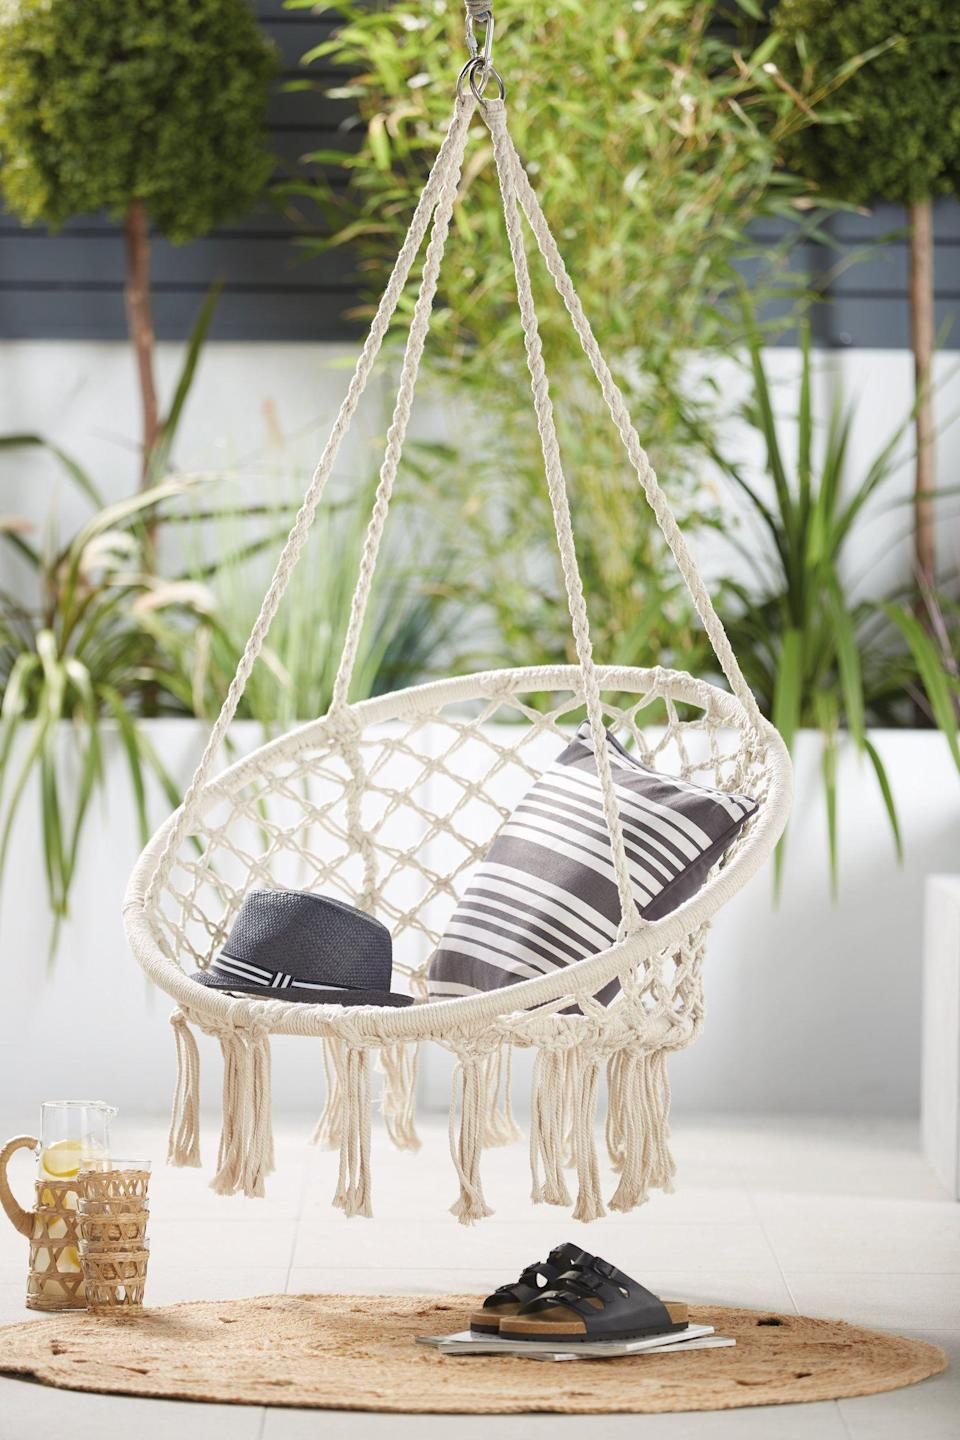 """<p>Take your garden to the next level this summer with Aldi's new collection of special buys. From hanging rope seats to stylish plant pots, the budget supermarket has everything you need to refresh your space for less. </p><p>""""With the warm weather in sight, 47% of Brits are planning to revamp outdoor spaces to make the most of the summer with family and friends,"""" explain the team. """"Aldi's new stylish garden range has everything needed to create the perfect on-trend cinema for less, transporting shoppers to a celeb-inspired retreat with their favourite blockbuster.""""</p><p>The garden range is available to <a href=""""https://www.aldi.co.uk/garden-shop"""" rel=""""nofollow noopener"""" target=""""_blank"""" data-ylk=""""slk:pre-order online"""" class=""""link rapid-noclick-resp"""">pre-order online</a> from Sunday 23rd May and will be in stores from Thursday 27th May, while stocks last. You'll have to be quick if you want to snap up these special buys... </p>"""